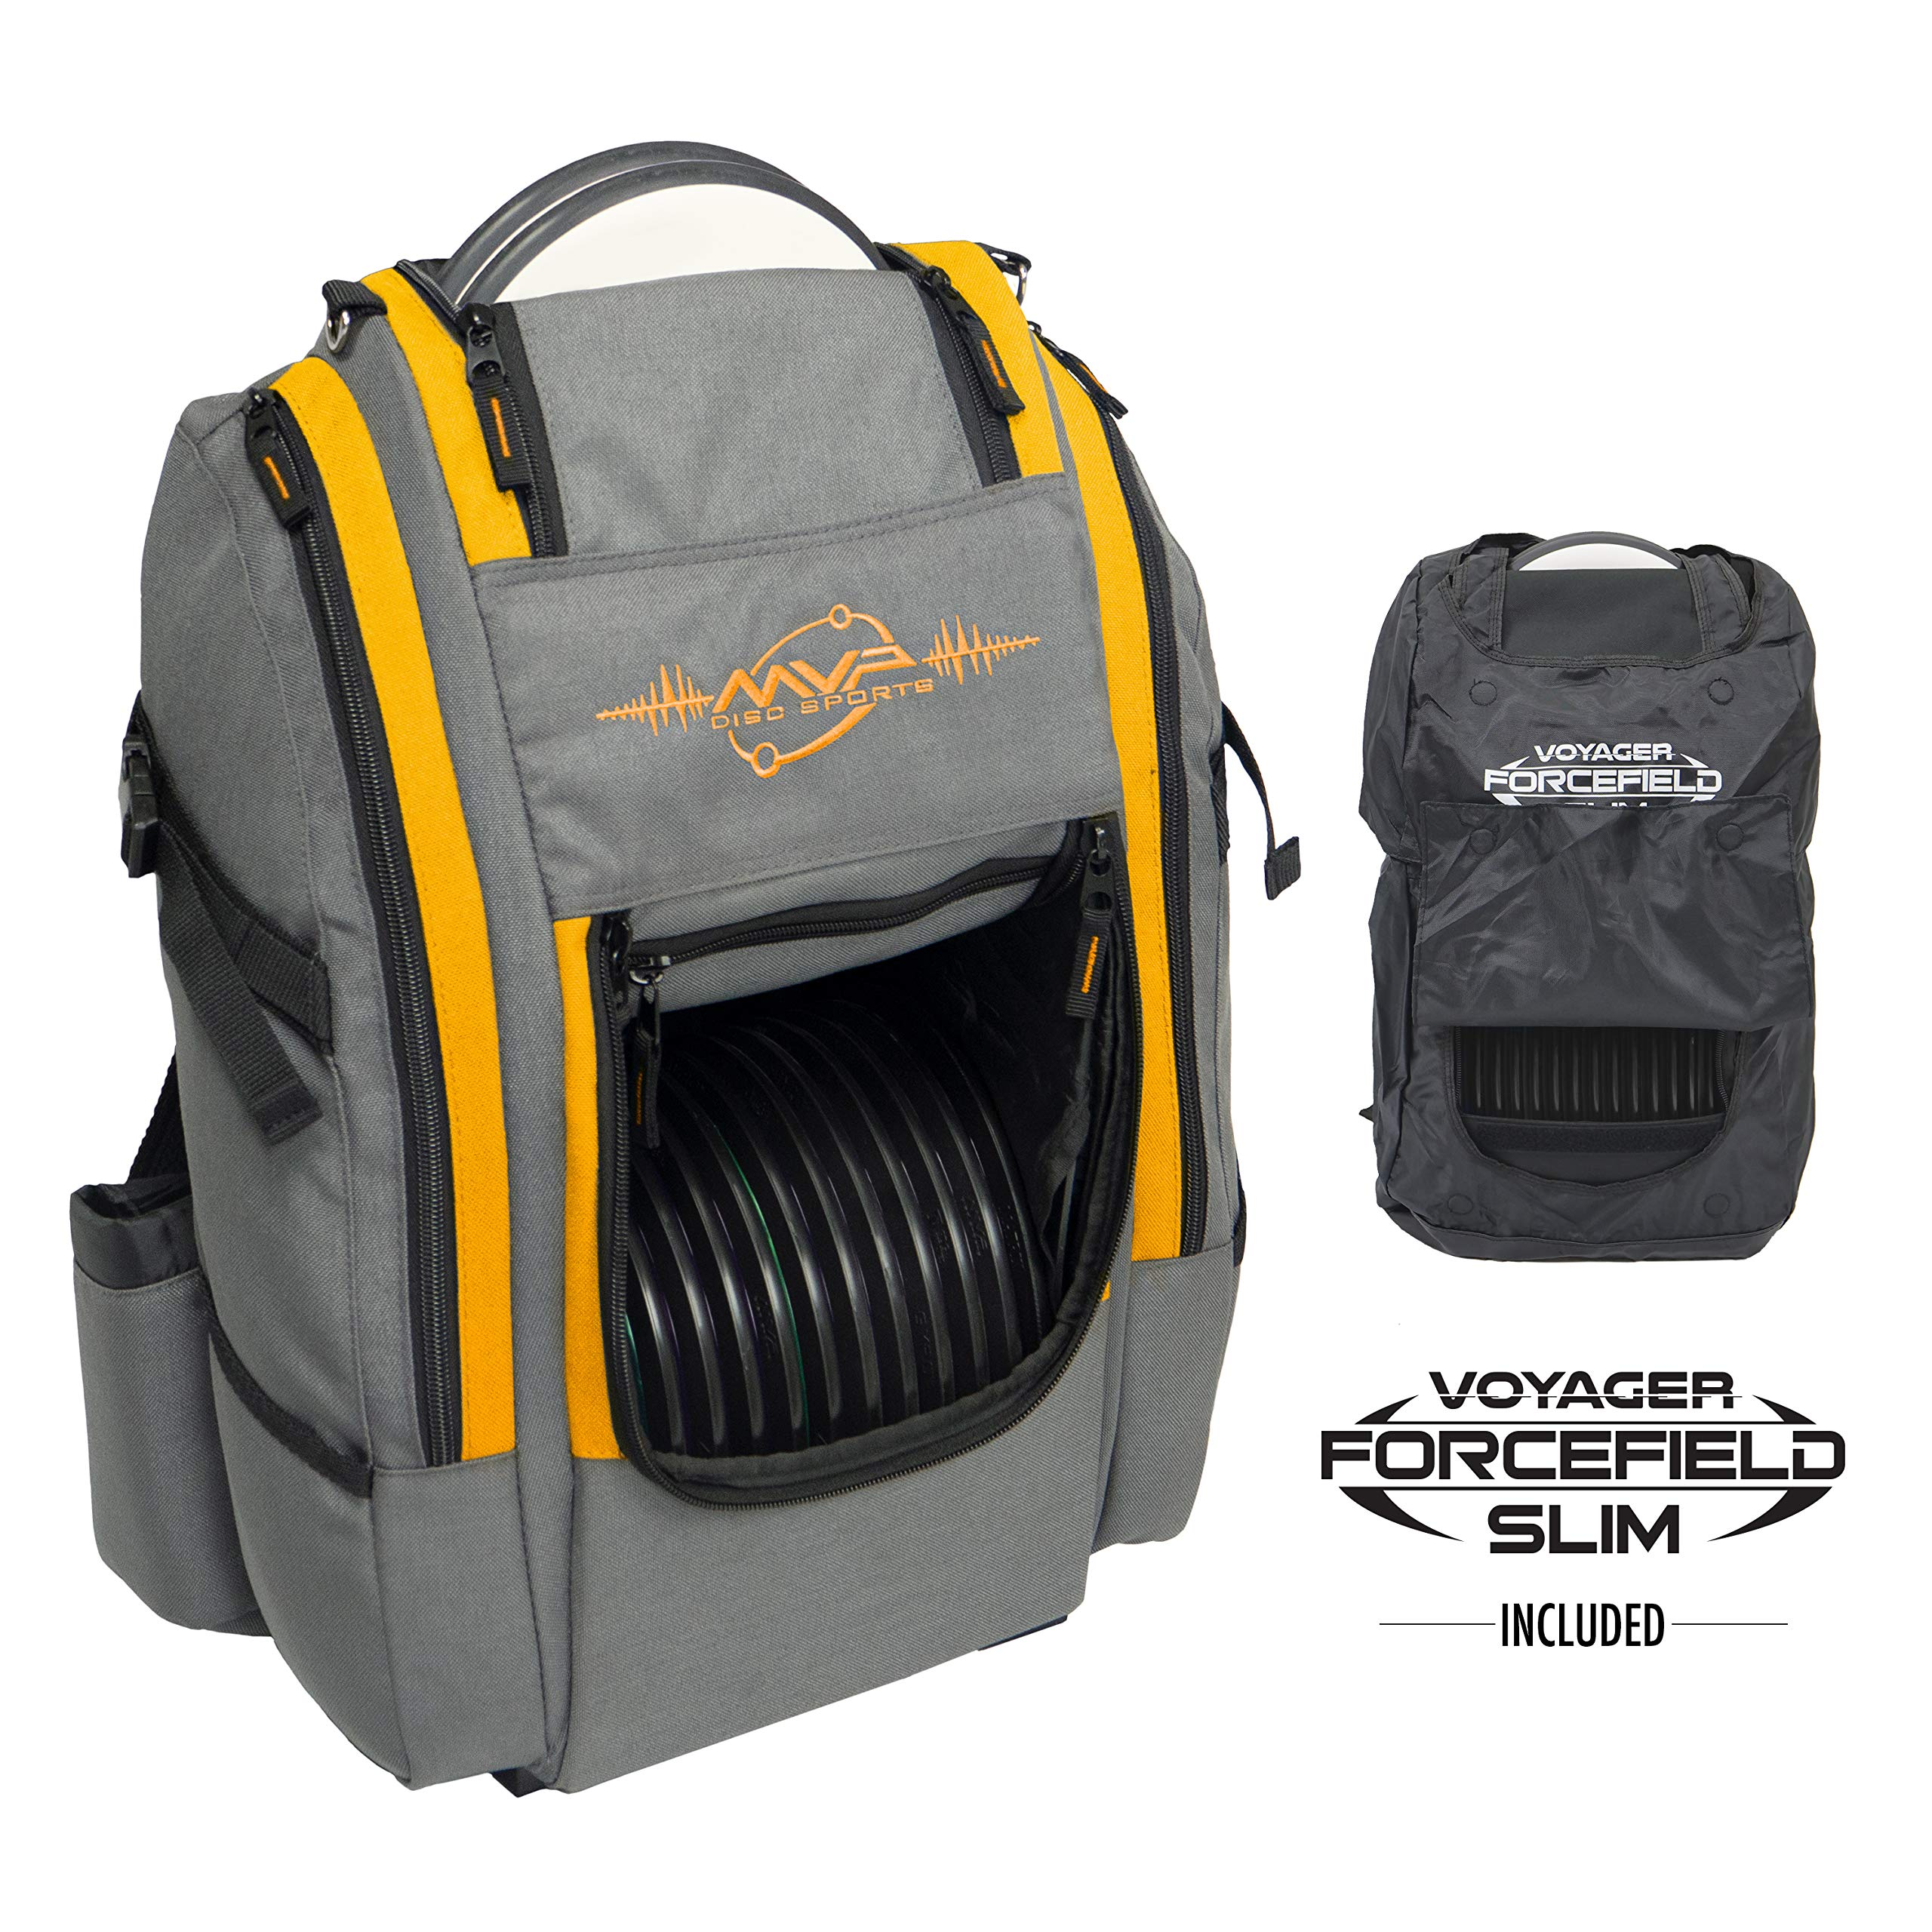 MVP Disc Sports Voyager Slim Bag (Gray/Orange) + Forcefield by MVP Disc Sports